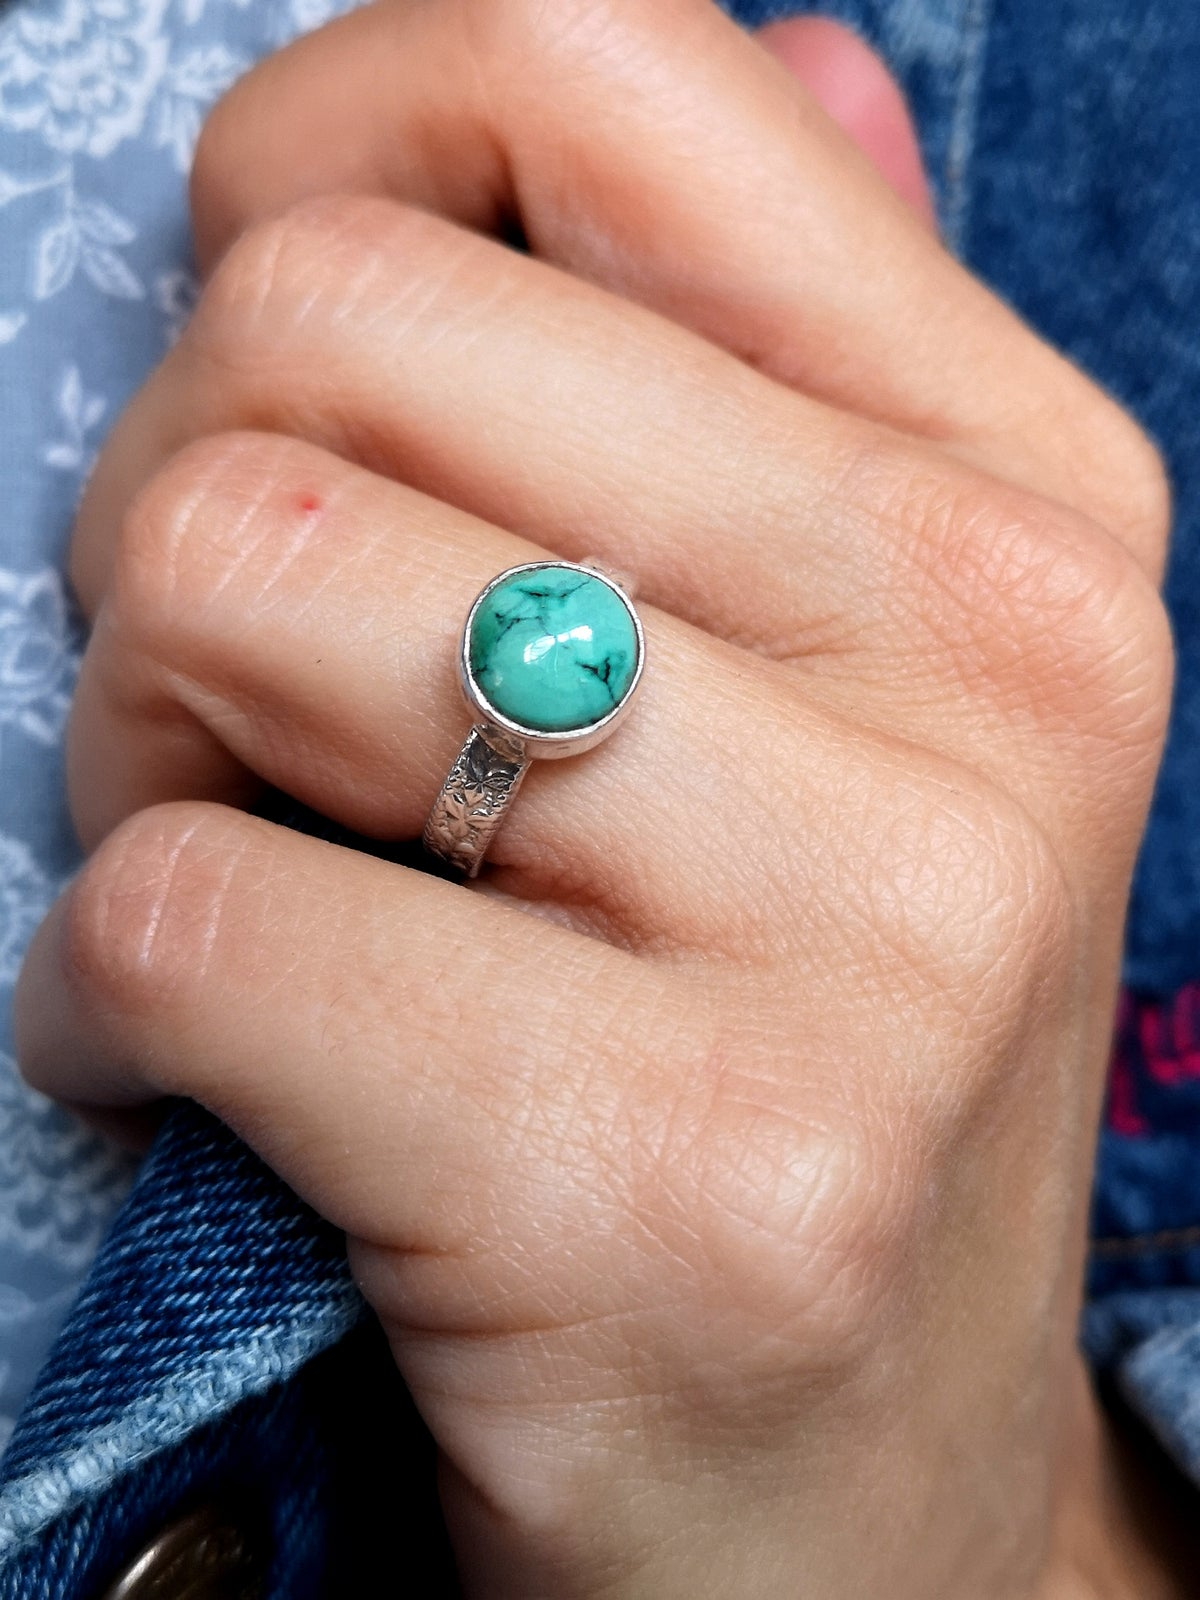 Image of Bague turquoise du tibet ref. 7086 - taille 53